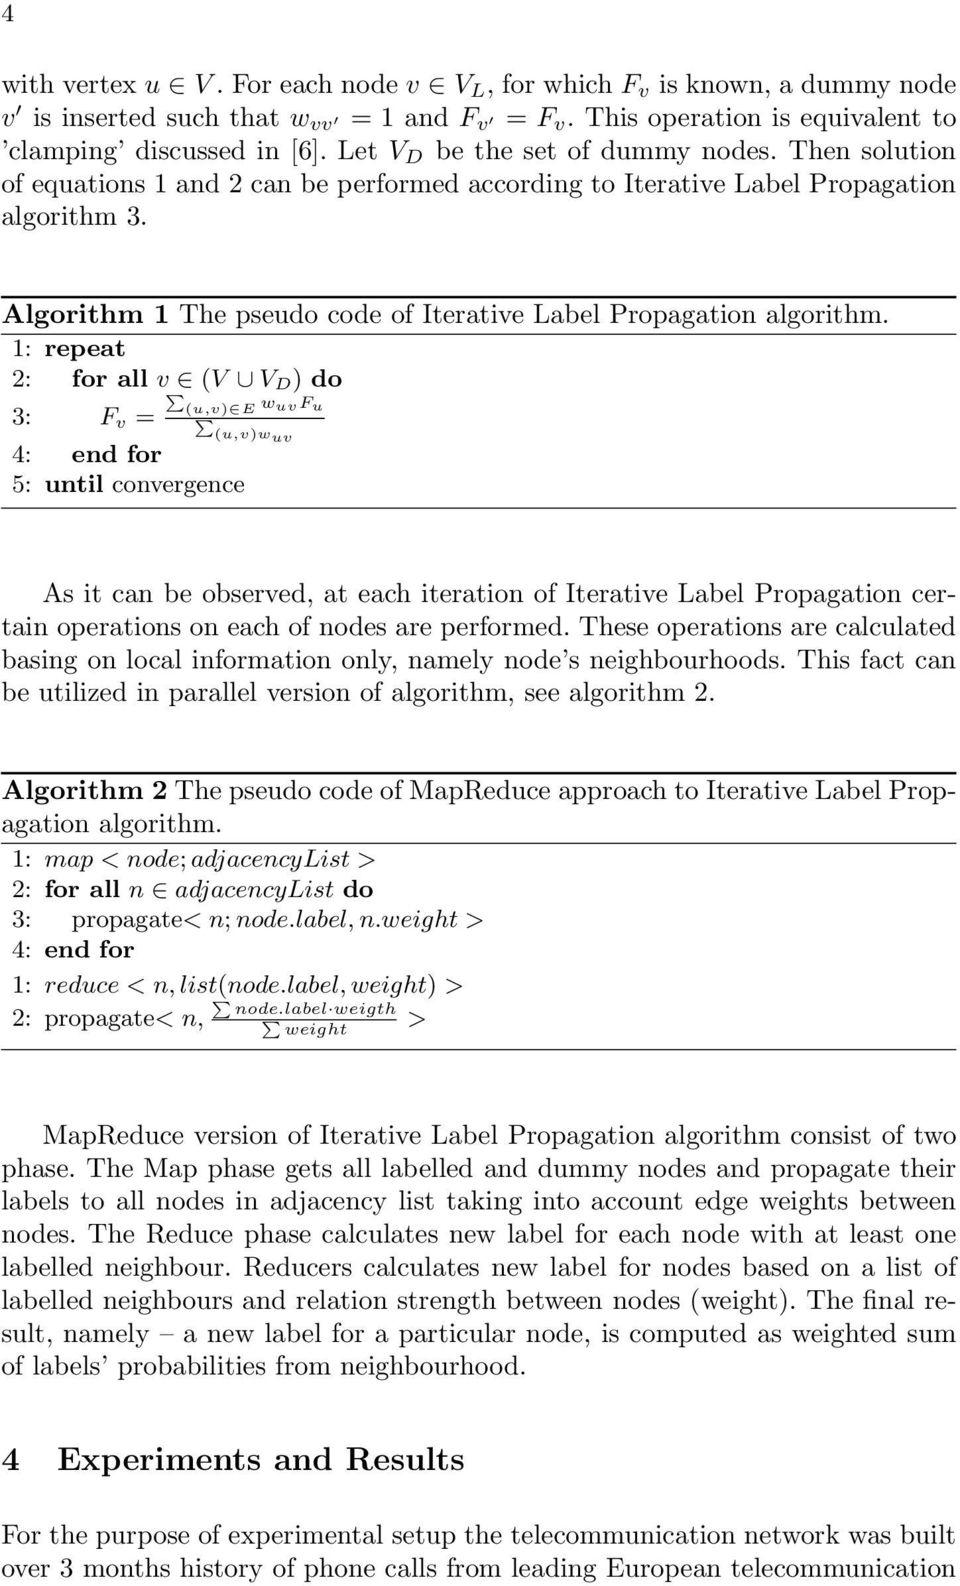 Algorithm 1 The pseudo code of Iterative Label Propagation algorithm.